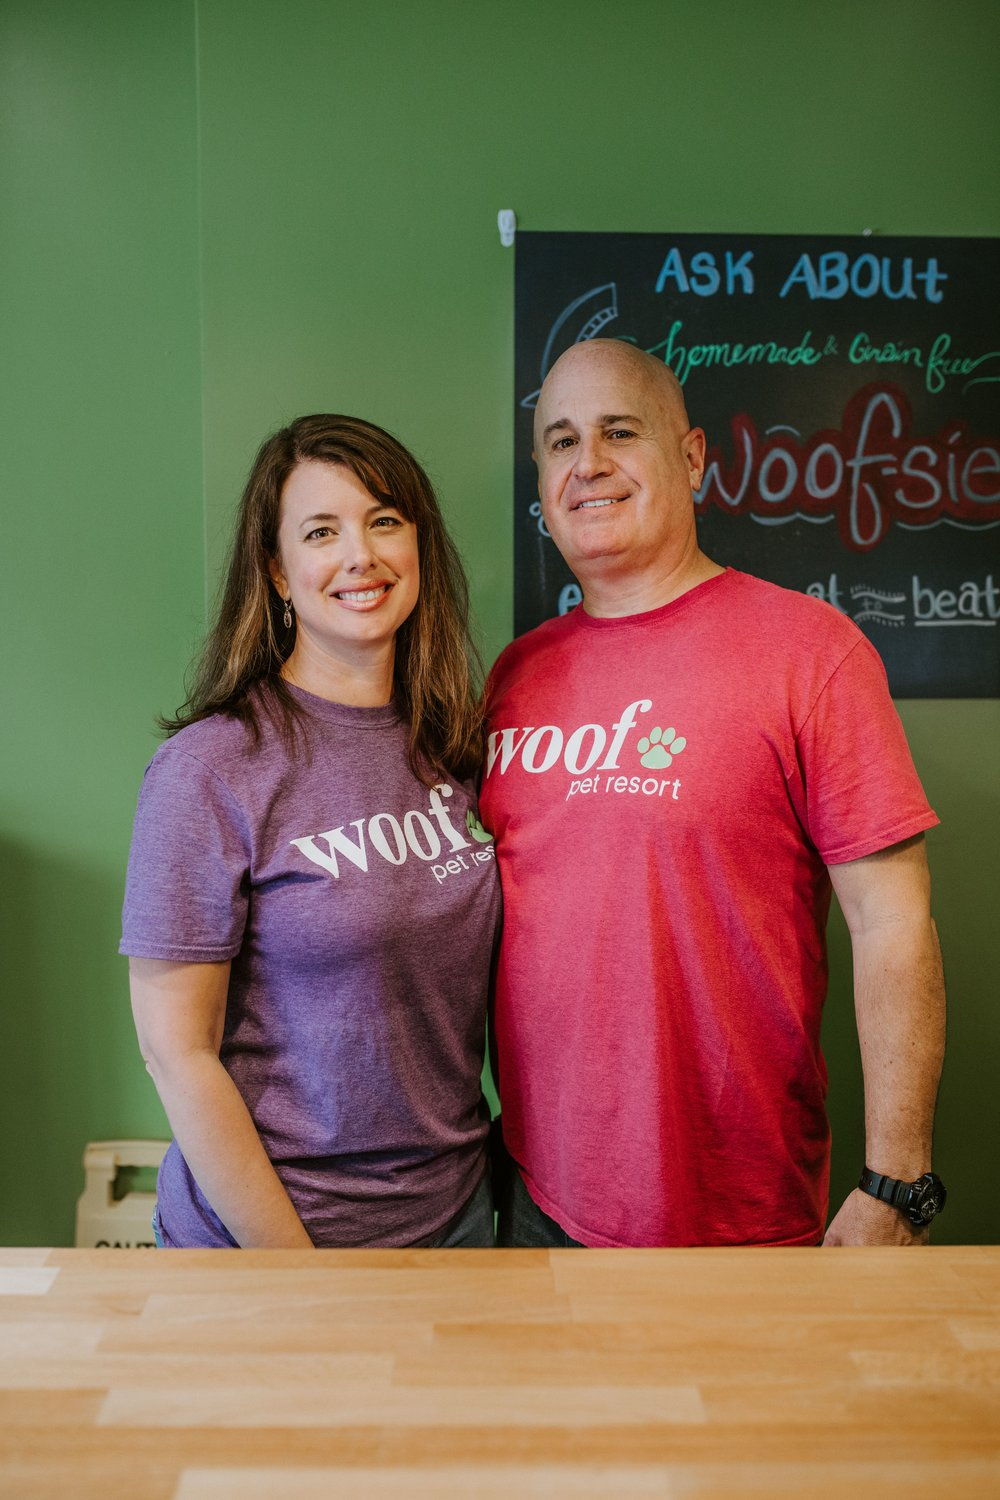 Meet the Owners - Meet Jon + Shana Piuze — classic husband/wife duo and Owner/Operators of Woof Pet Resort.